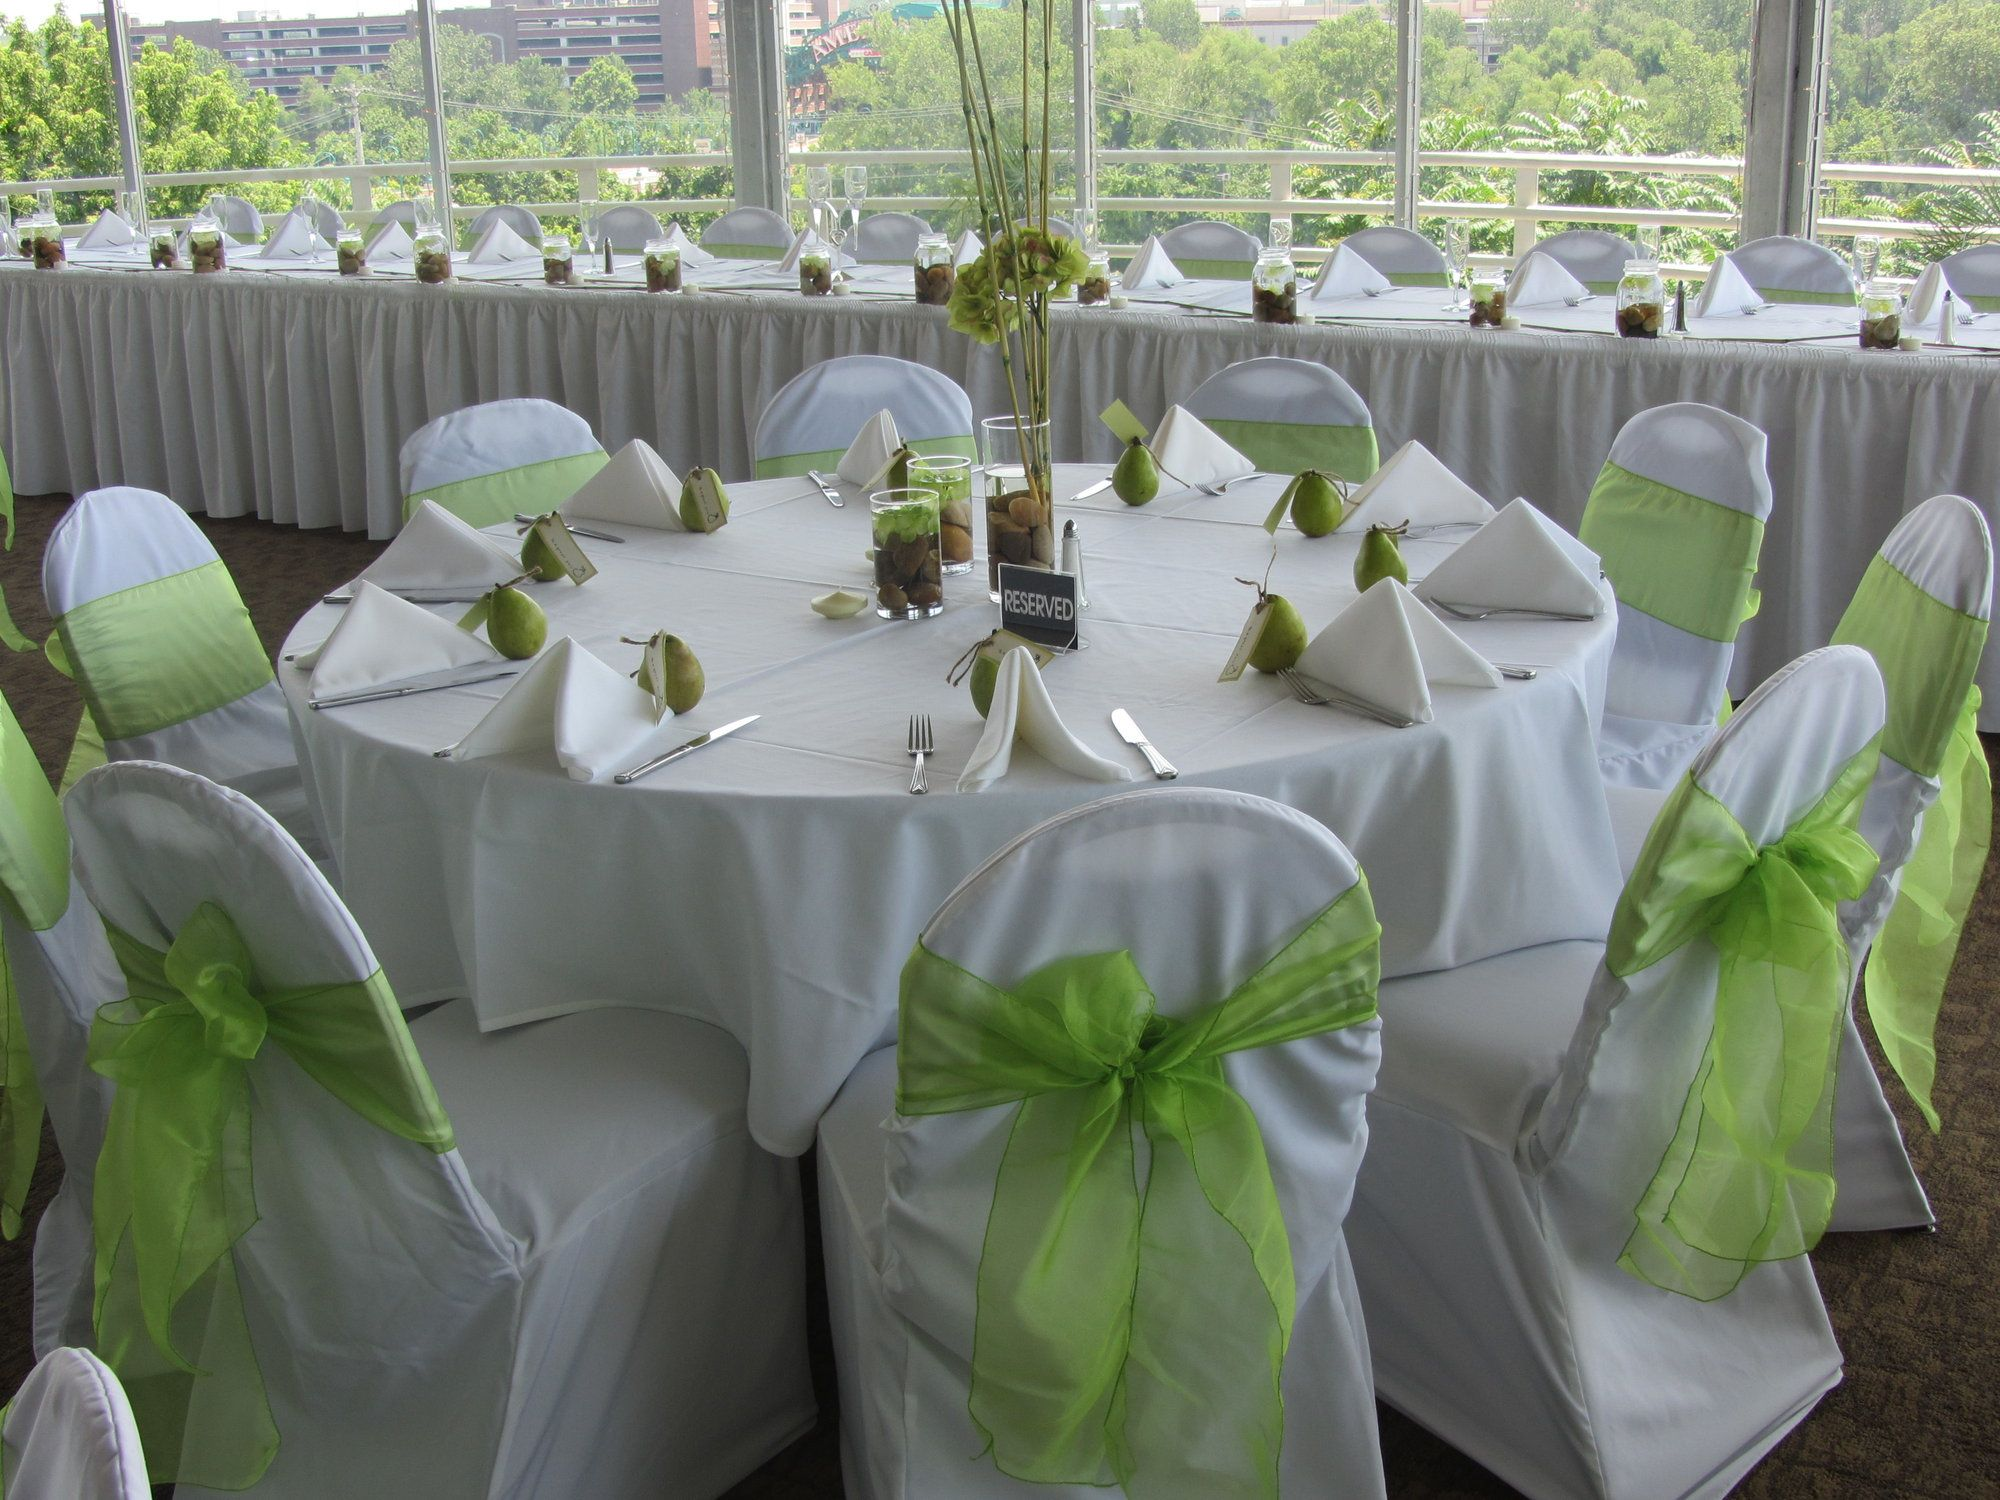 Unique Wedding Reception Ideas Green Setting This Picture Provides Some Great